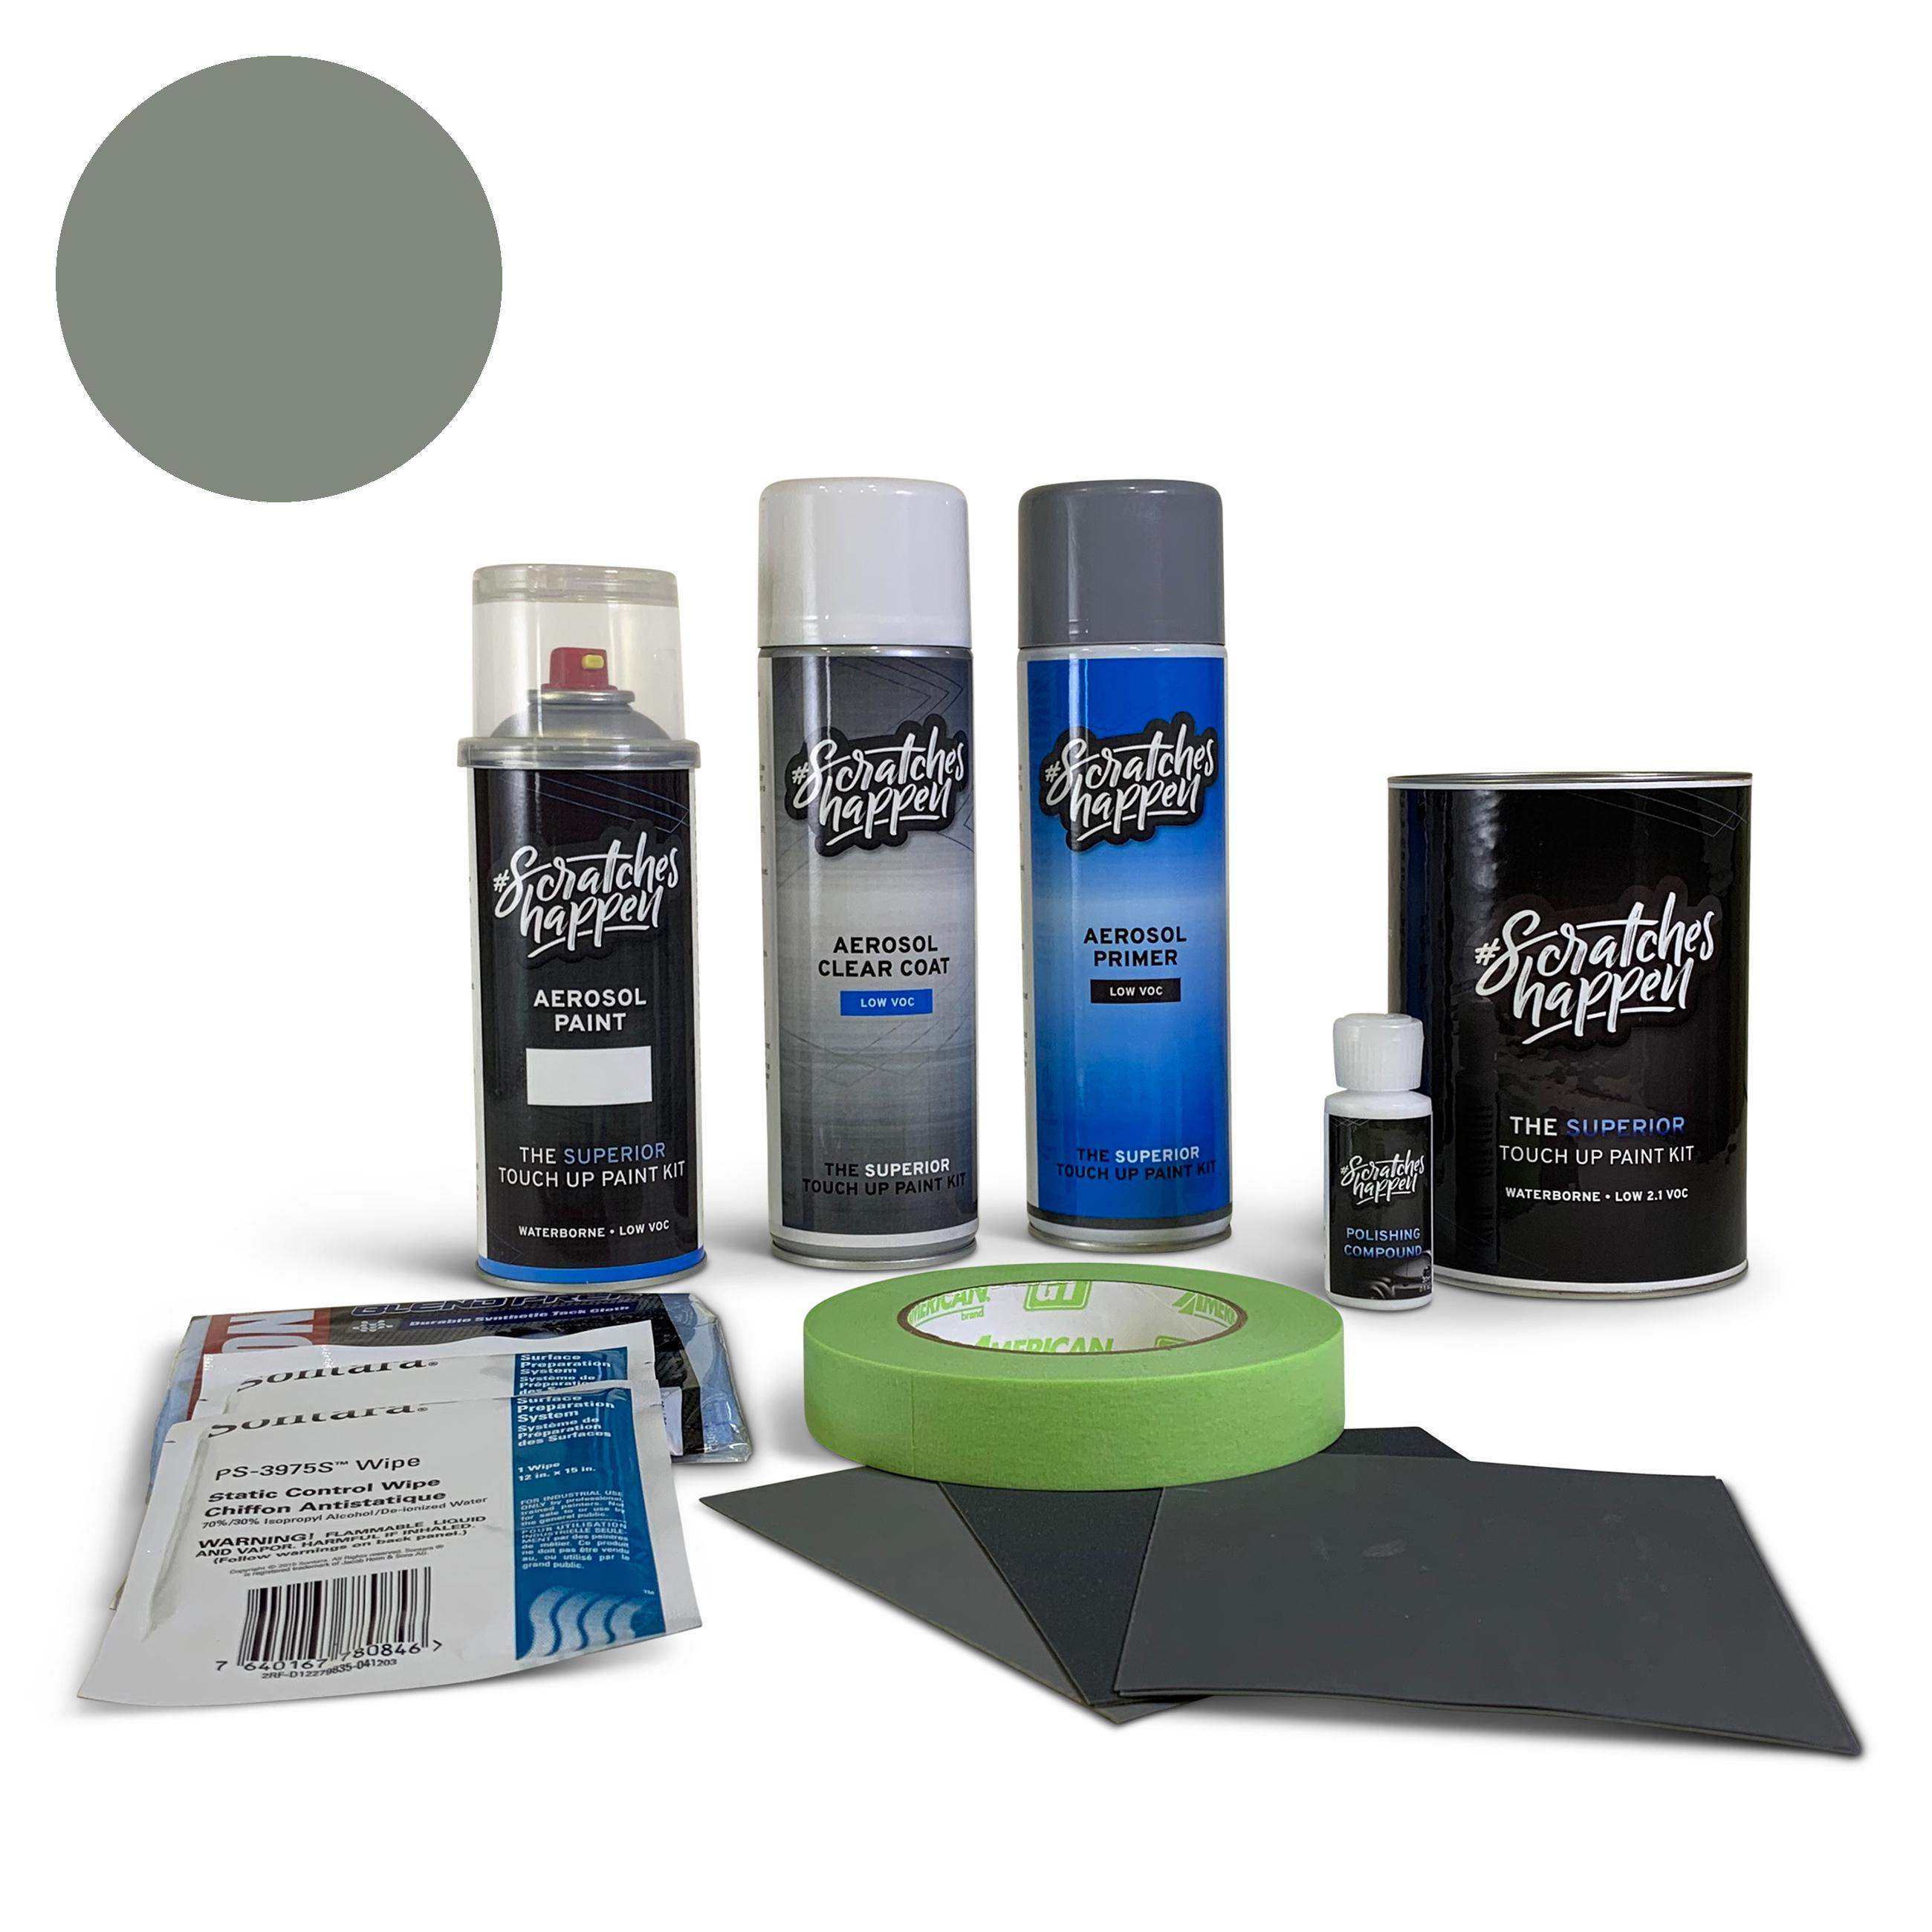 Acura/Honda Sterling Gray (NH-741M) Touch Up Paint